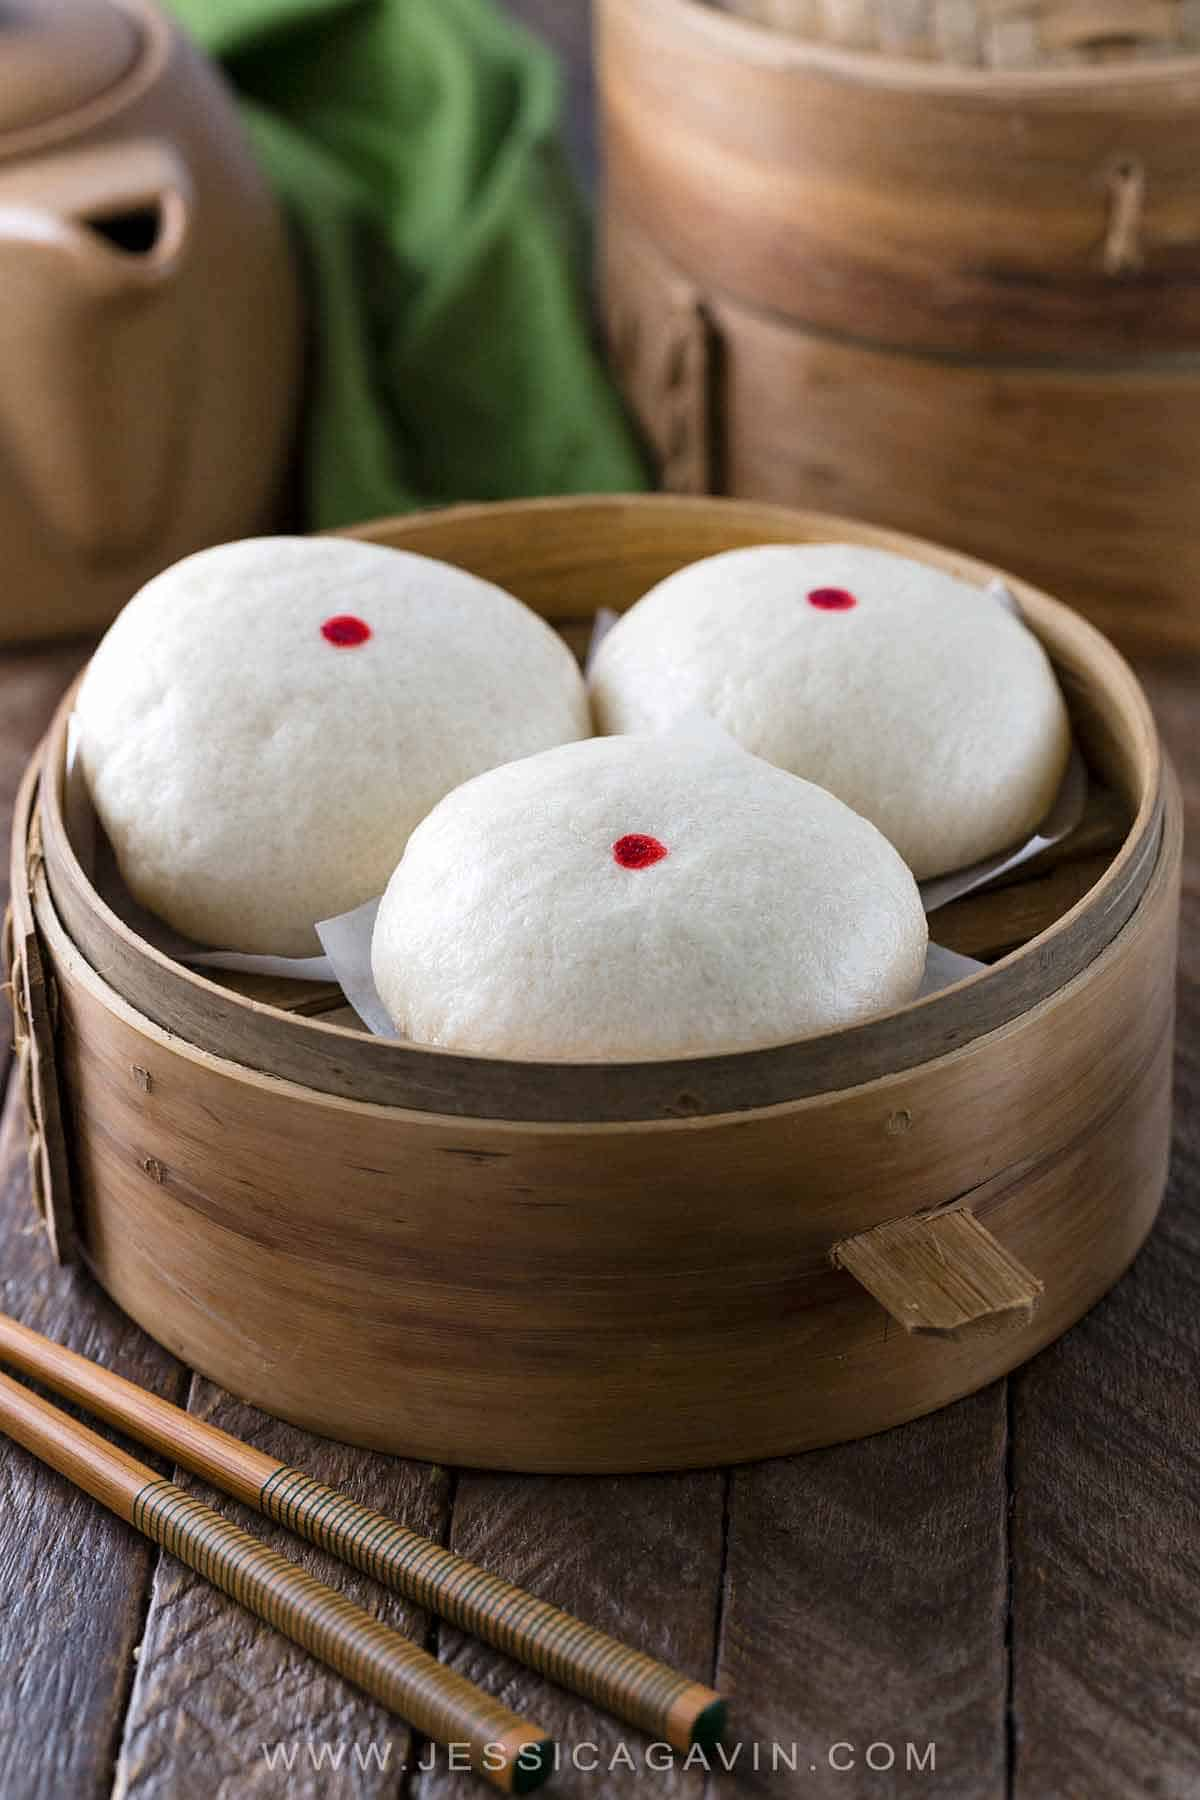 Chinese steamed custard buns also called Nai Wong Bao are deliciously sweet dessert. A popular Asian treat found at Dim Sum restaurants, but I'm going to show you how to make these right at home! #dimsum #chinese #custardbuns #bao #naiwongbao